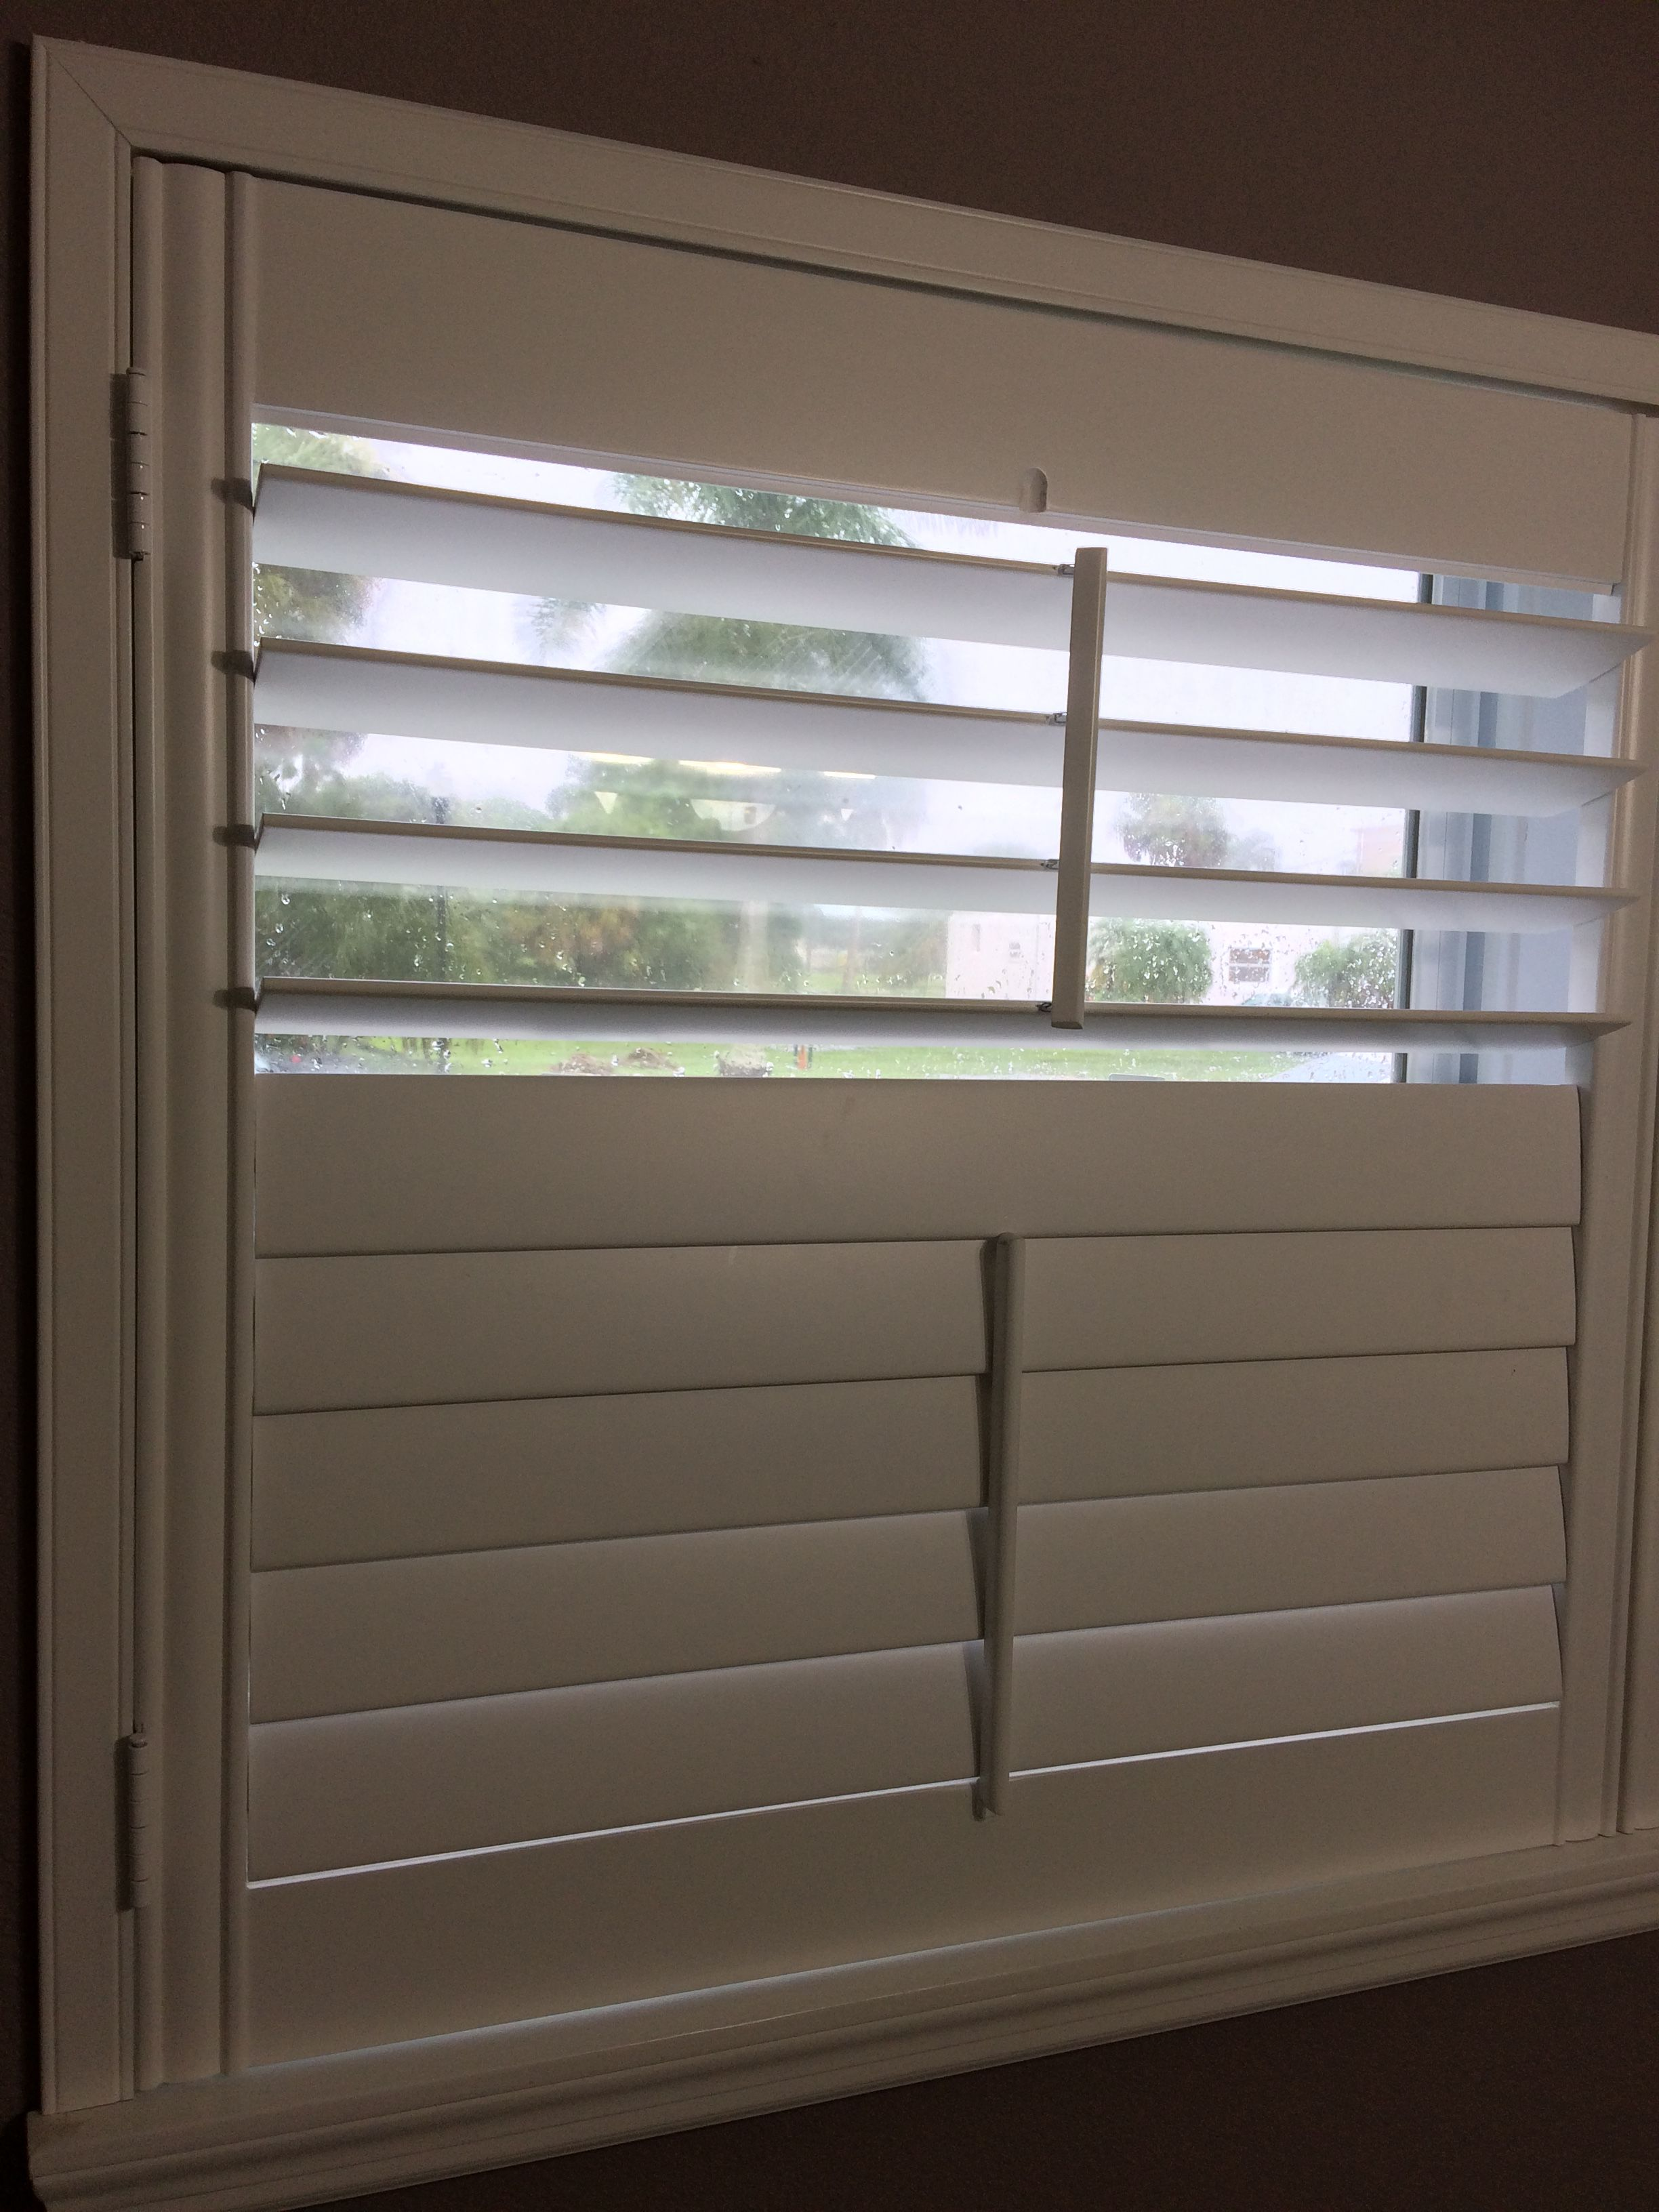 at pin standard wood sill custom mini mycreativewindow trim blind cleaner and shutters visit split with us tilt bar plantation com blinds